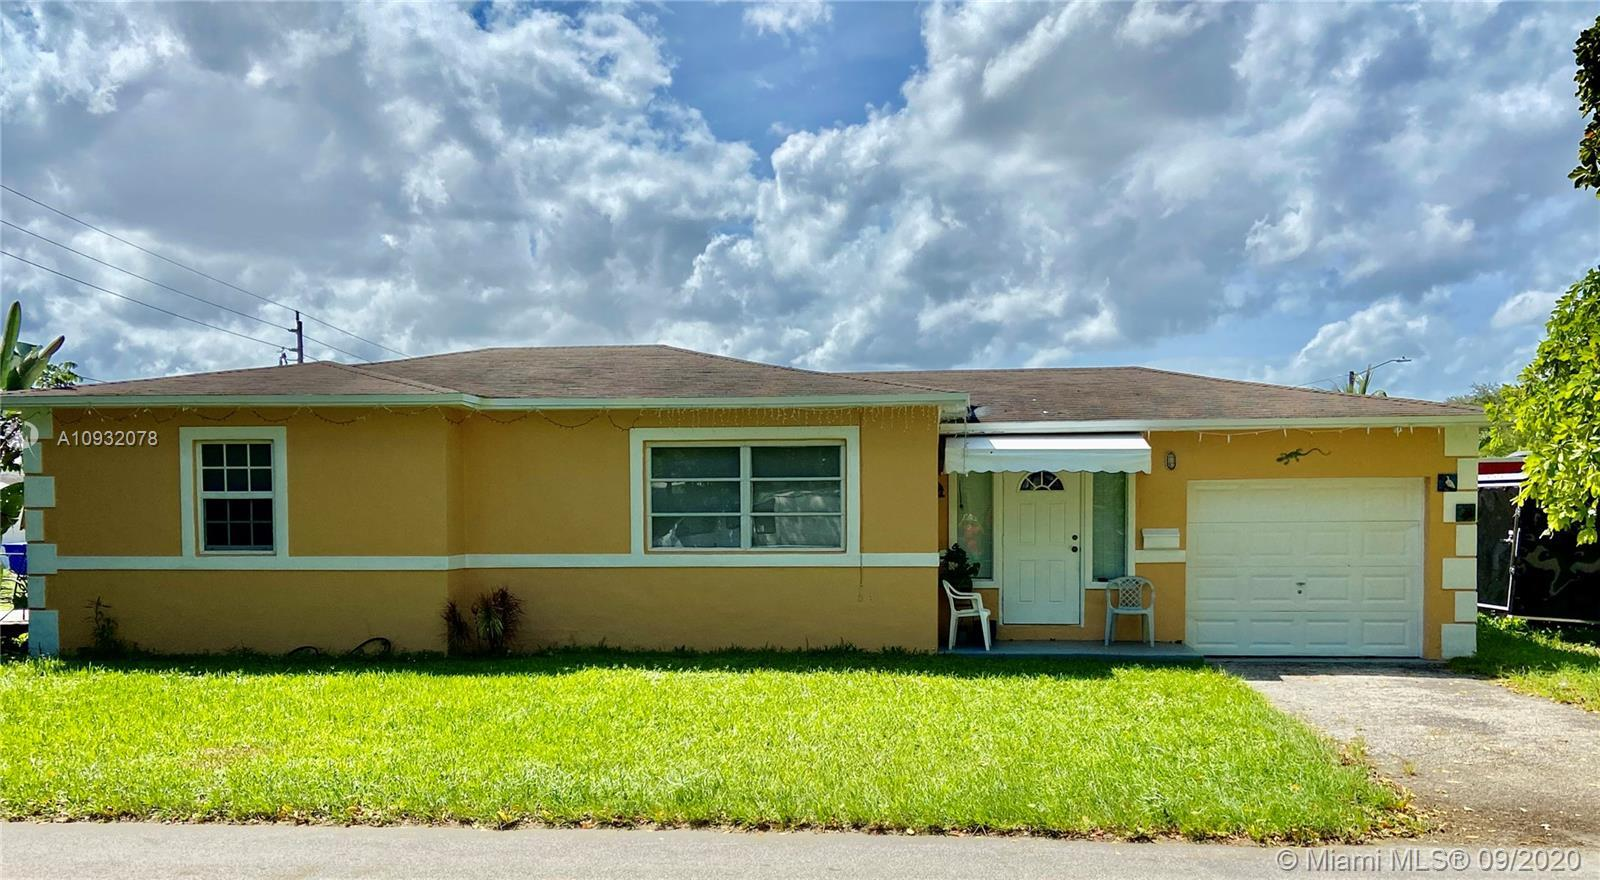 3/2 Single family home with an attached one car garage on a corner lot. Perfect for an investor or n